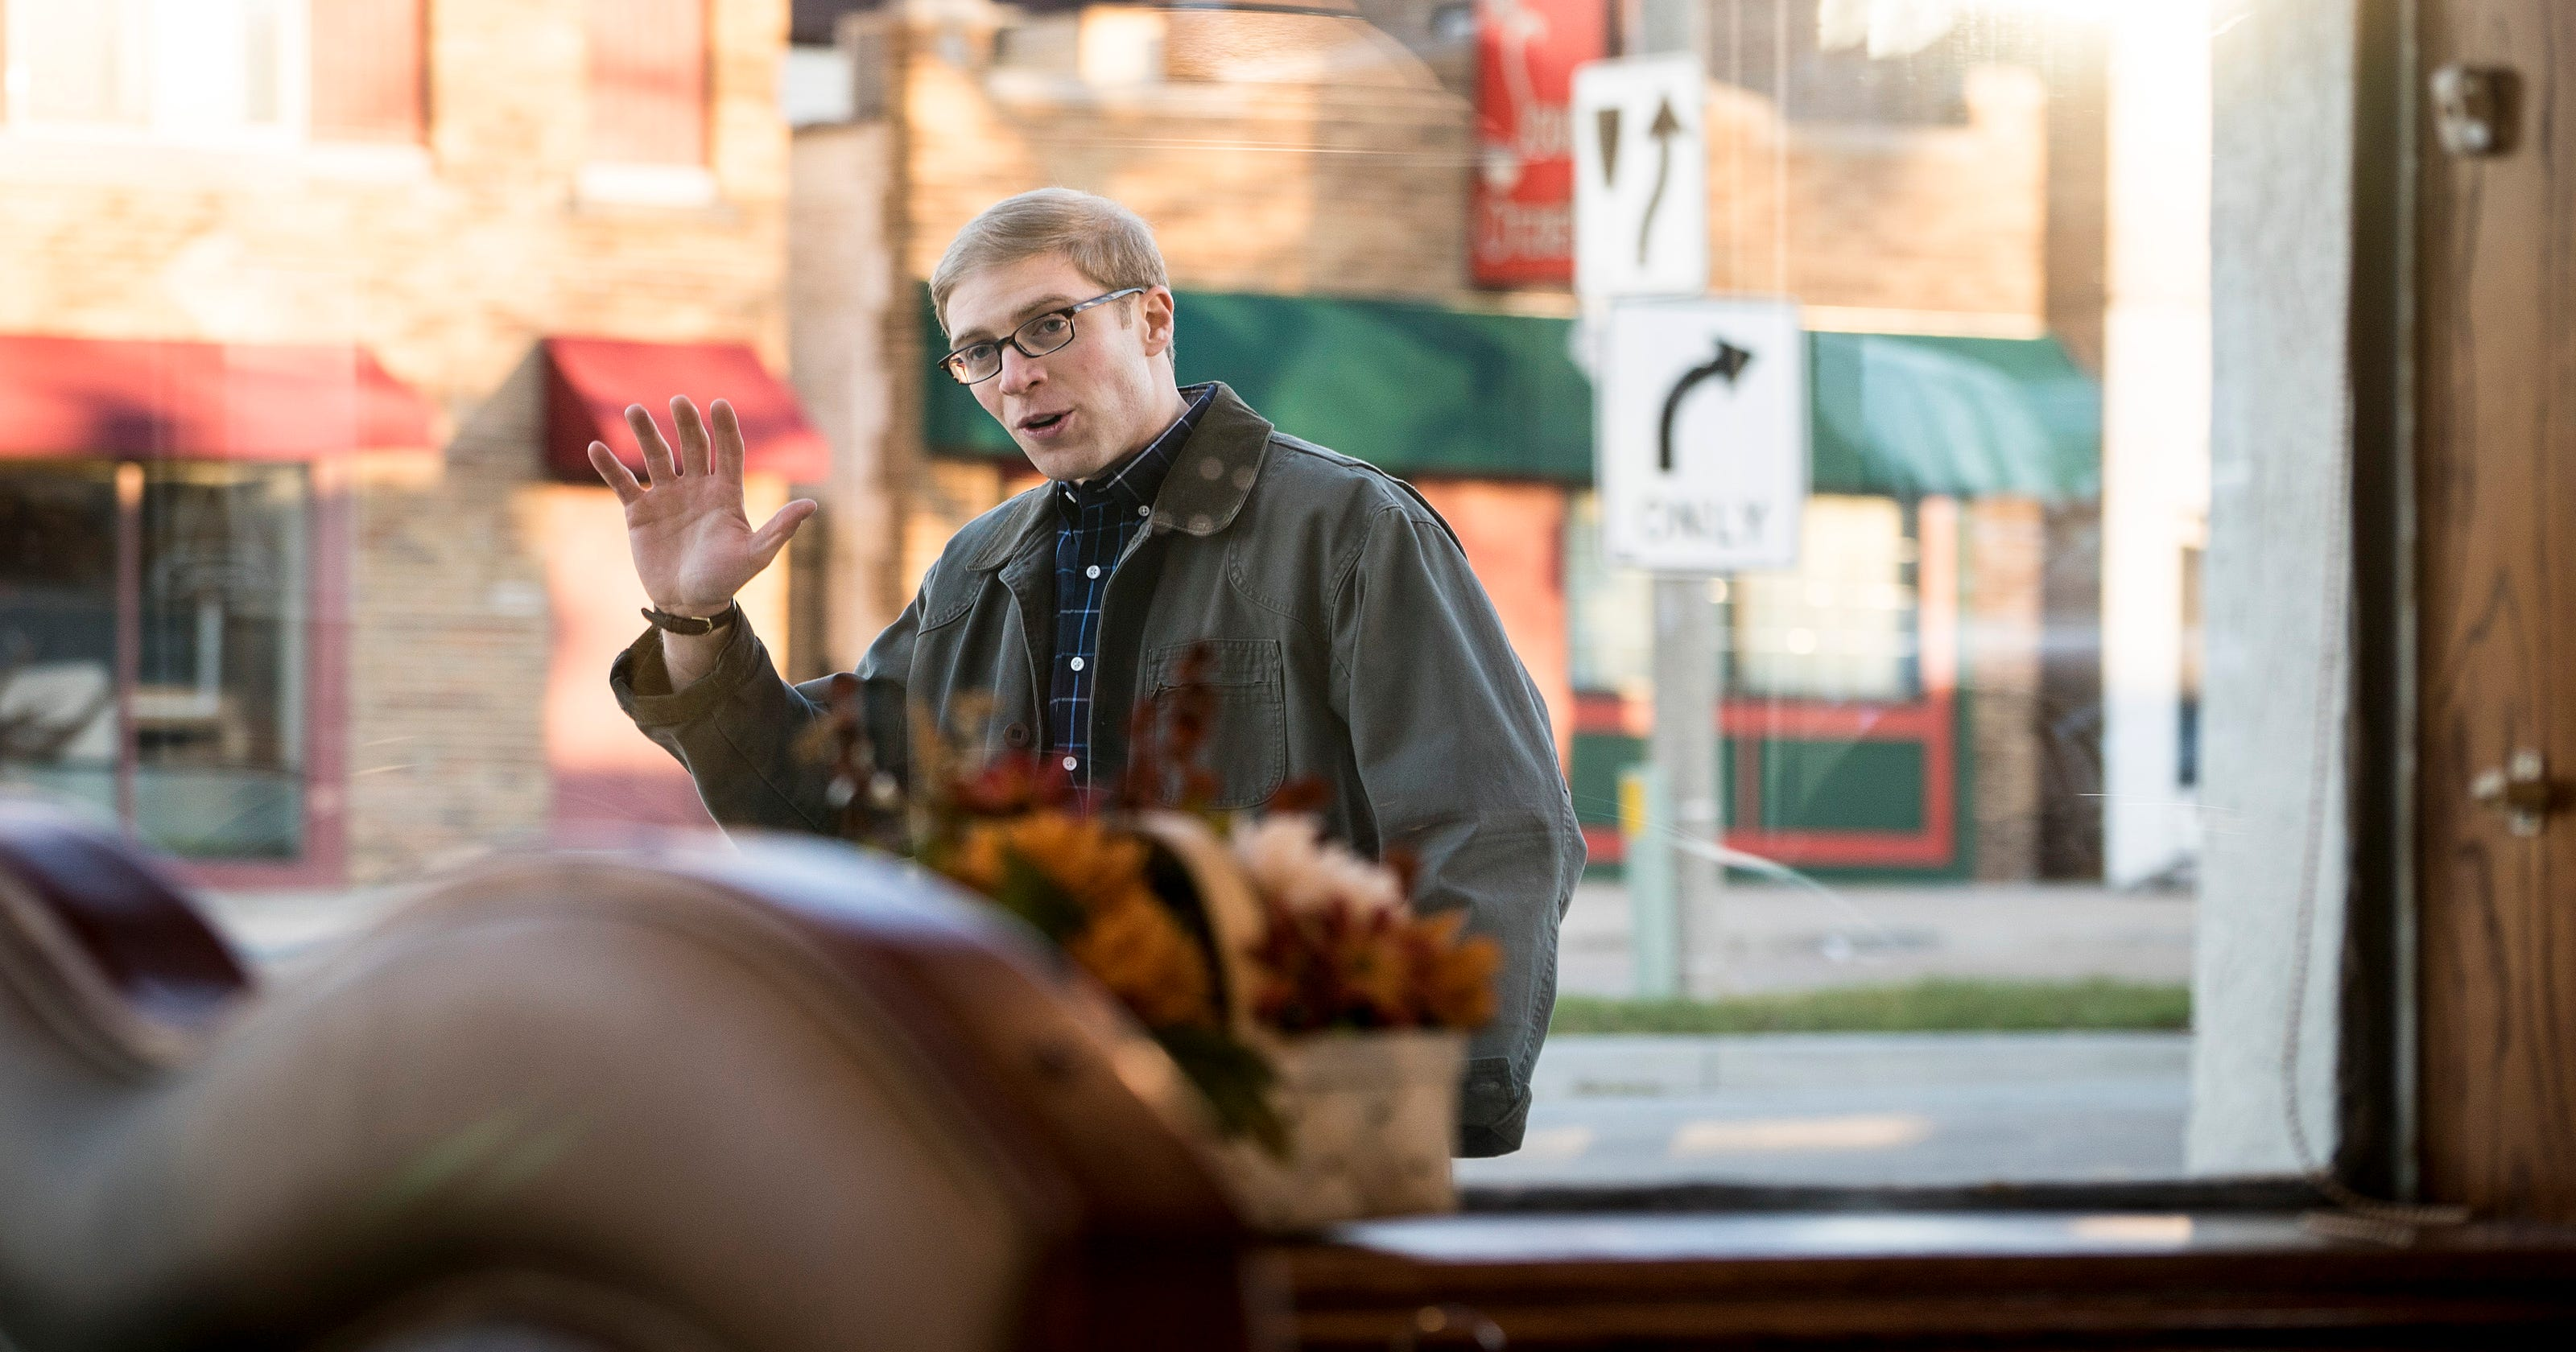 Adult Swim\'s \'Joe Pera Talks With You\' is about a quirky Yooper